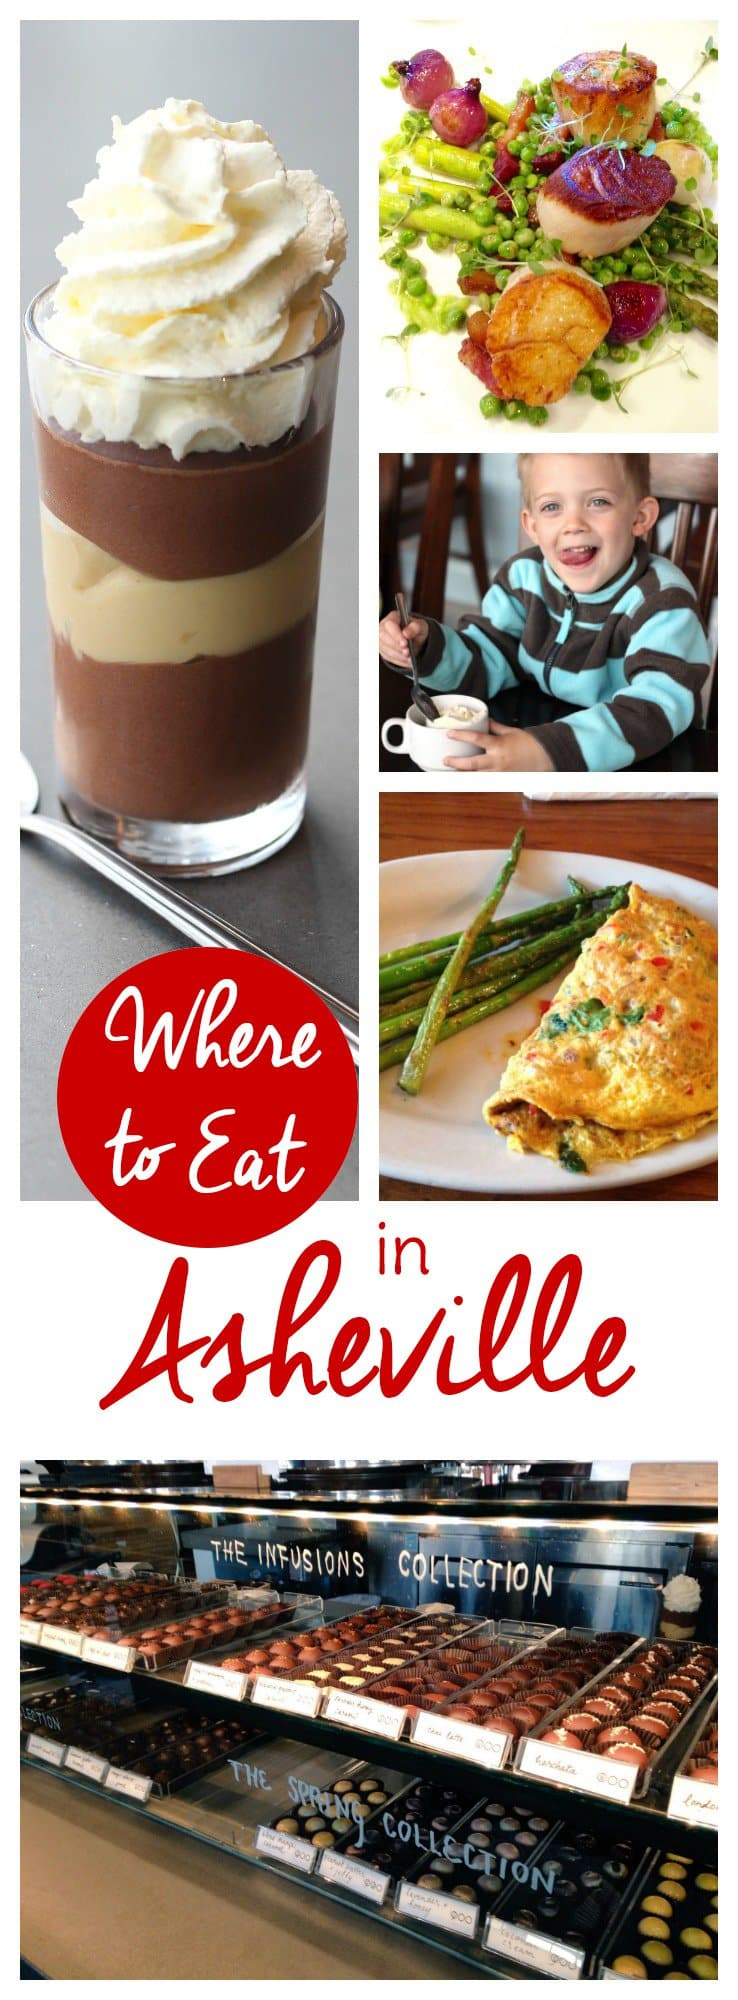 Wondering where to eat in Asheville? Let me be your guide! This downtown Asheville restaurant guide includes gluten-free fare and kid-friendly eateries.